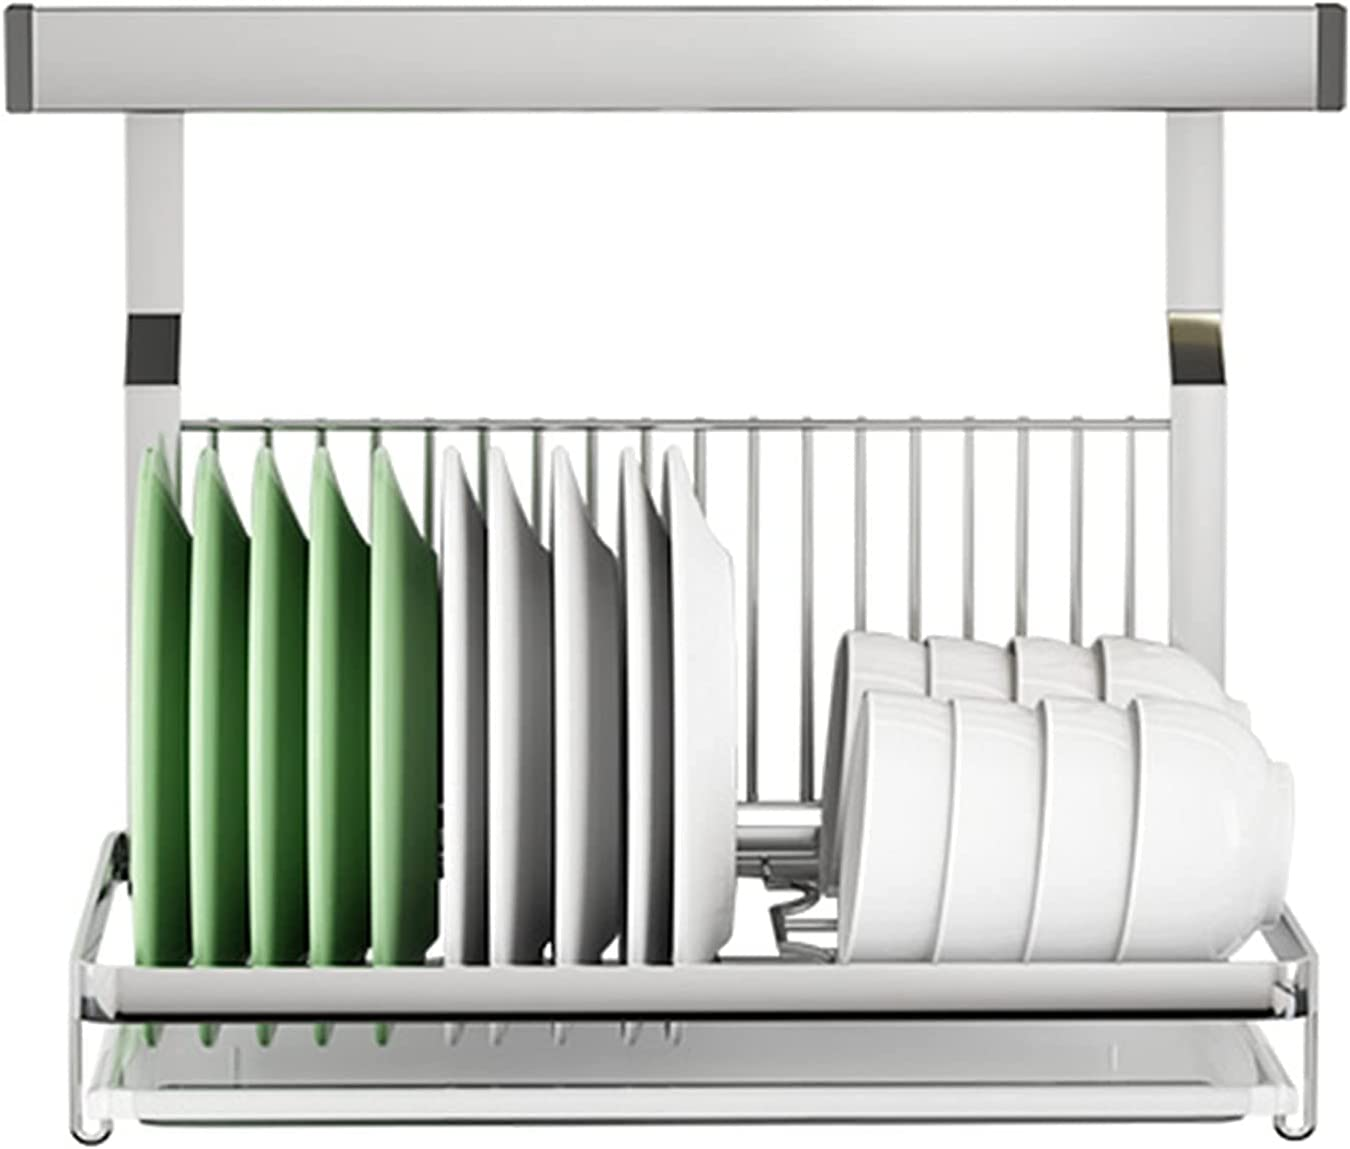 304 Stainless Steel Max 64% OFF Wall-Mounted Max 43% OFF Dish Rack Drain Silver